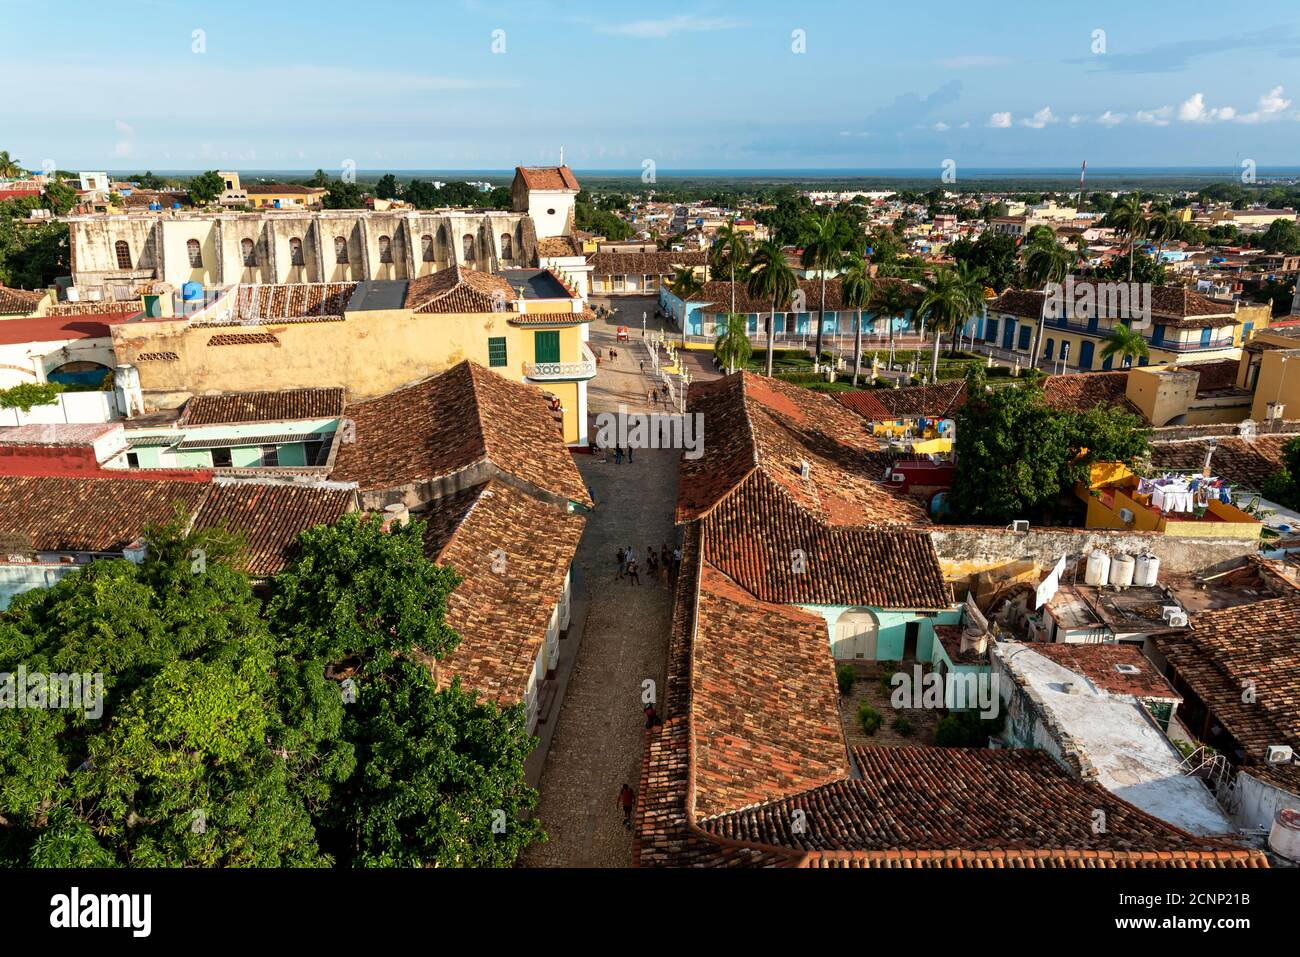 August 24, 2019: Views over Trinidad from the tower of St Francis Assisi convent. Trinidad, Cuba Stock Photo